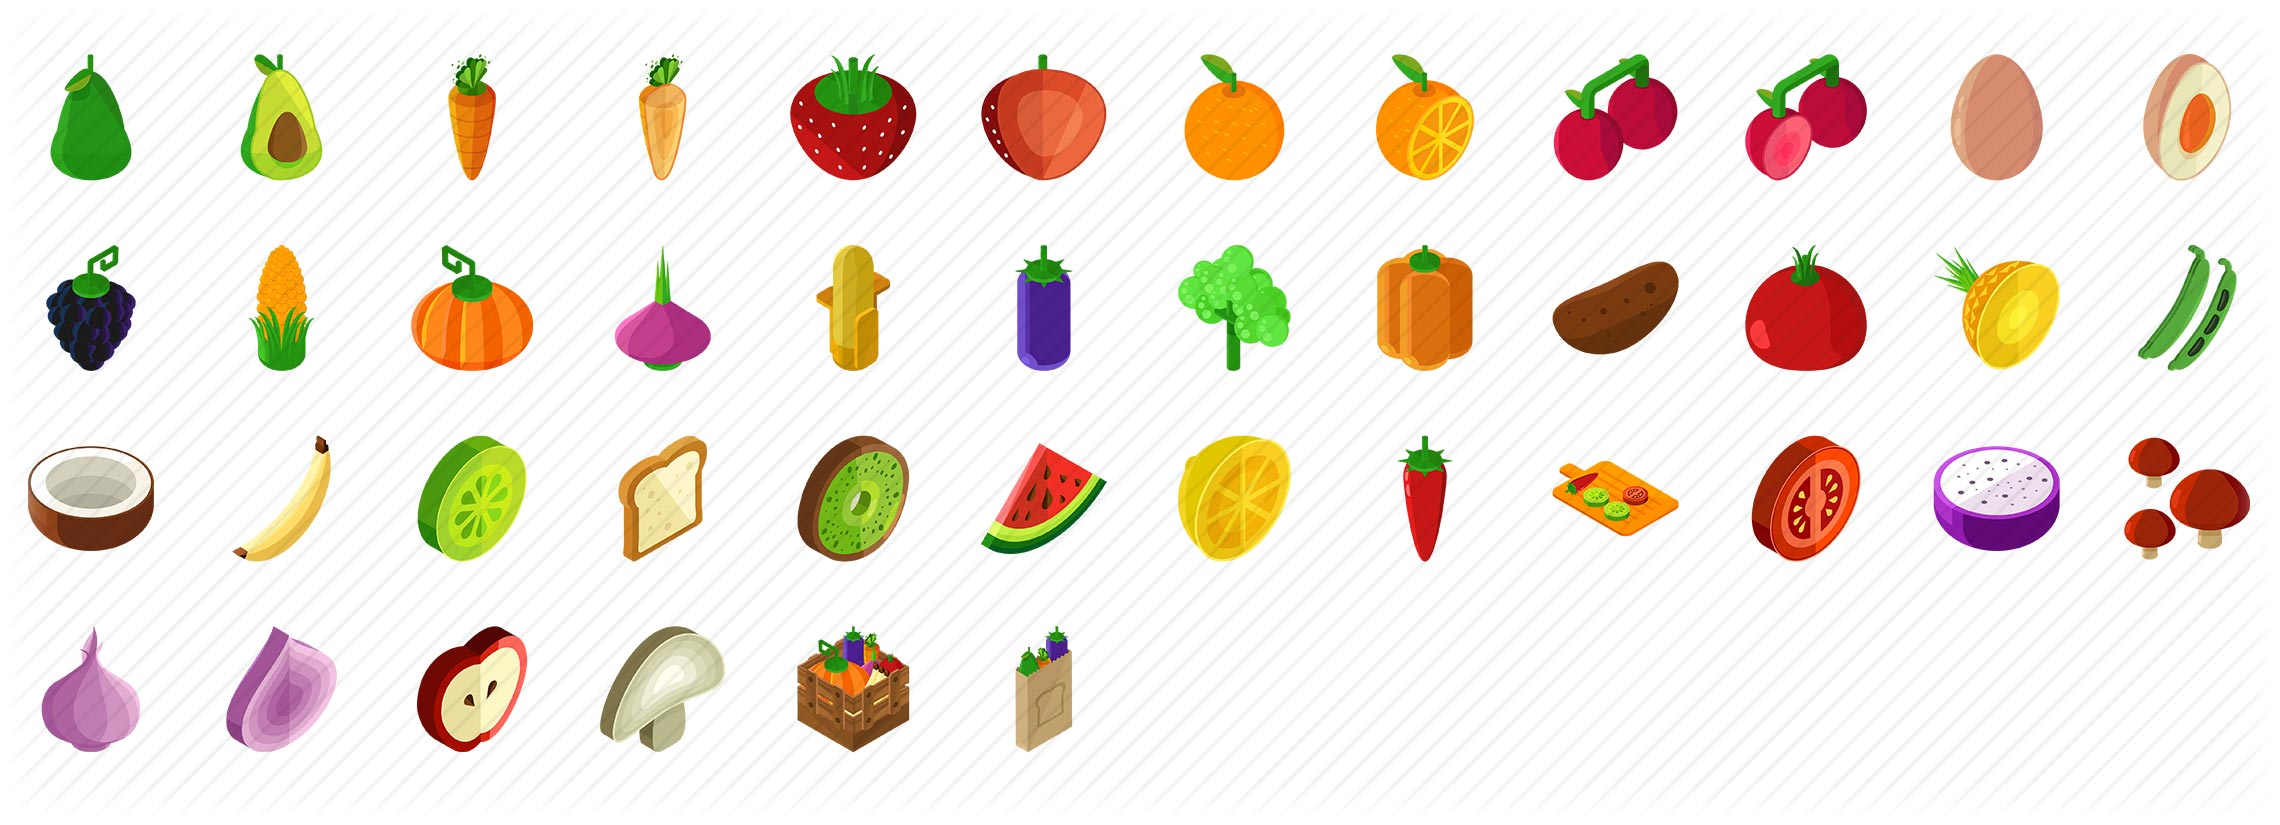 Fruits and Vegetables Isometric Icons